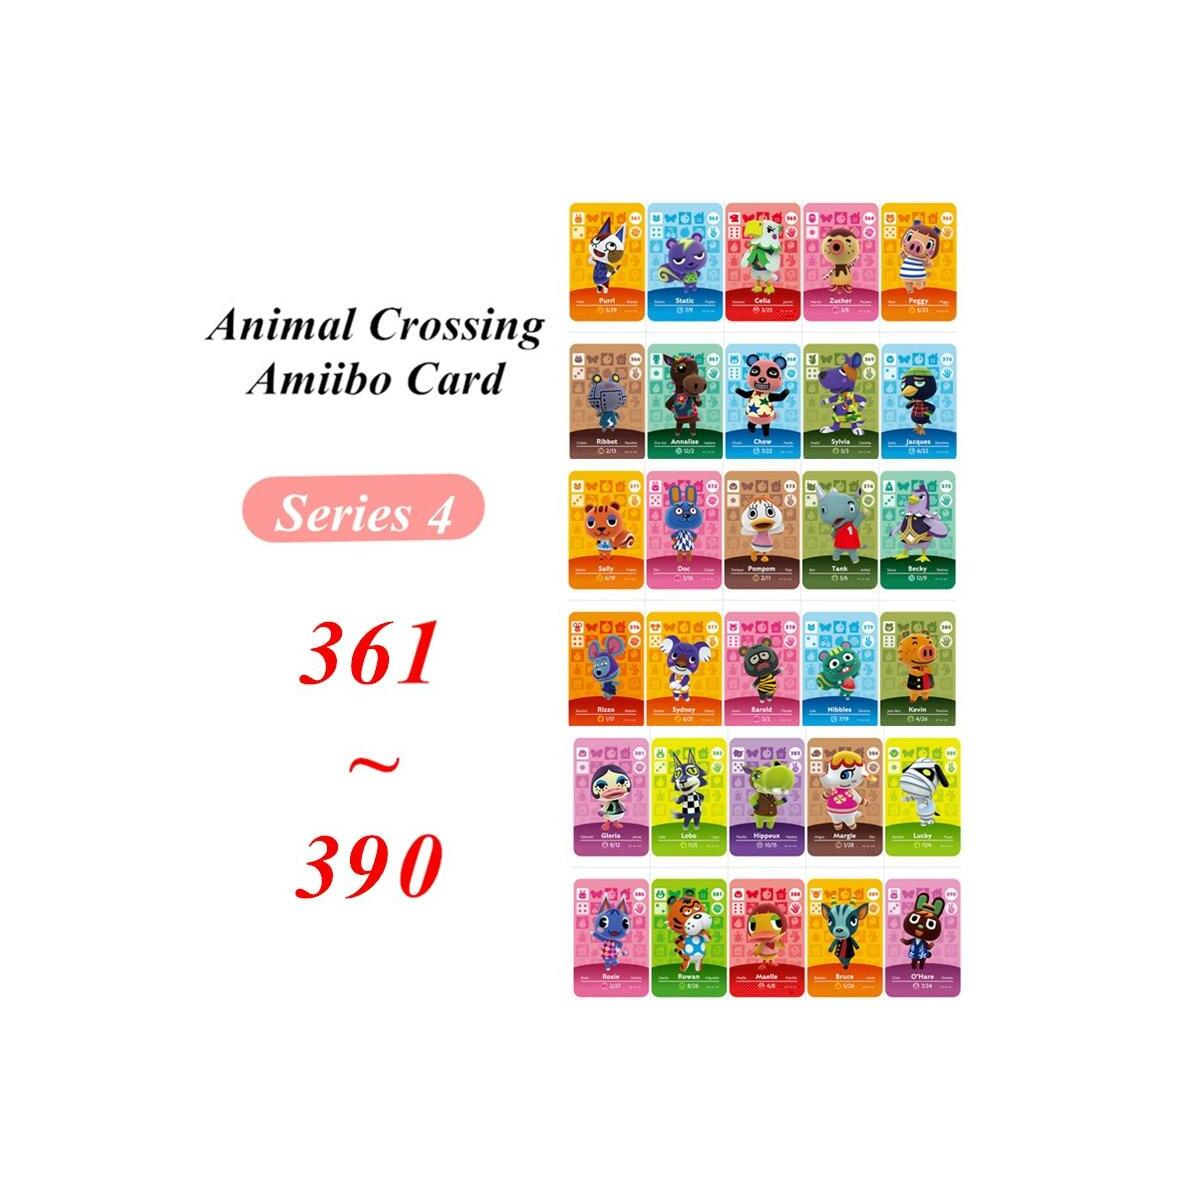 361 to 390 Animal Crossing Amiibo Cards Series 4, 370 Jacques